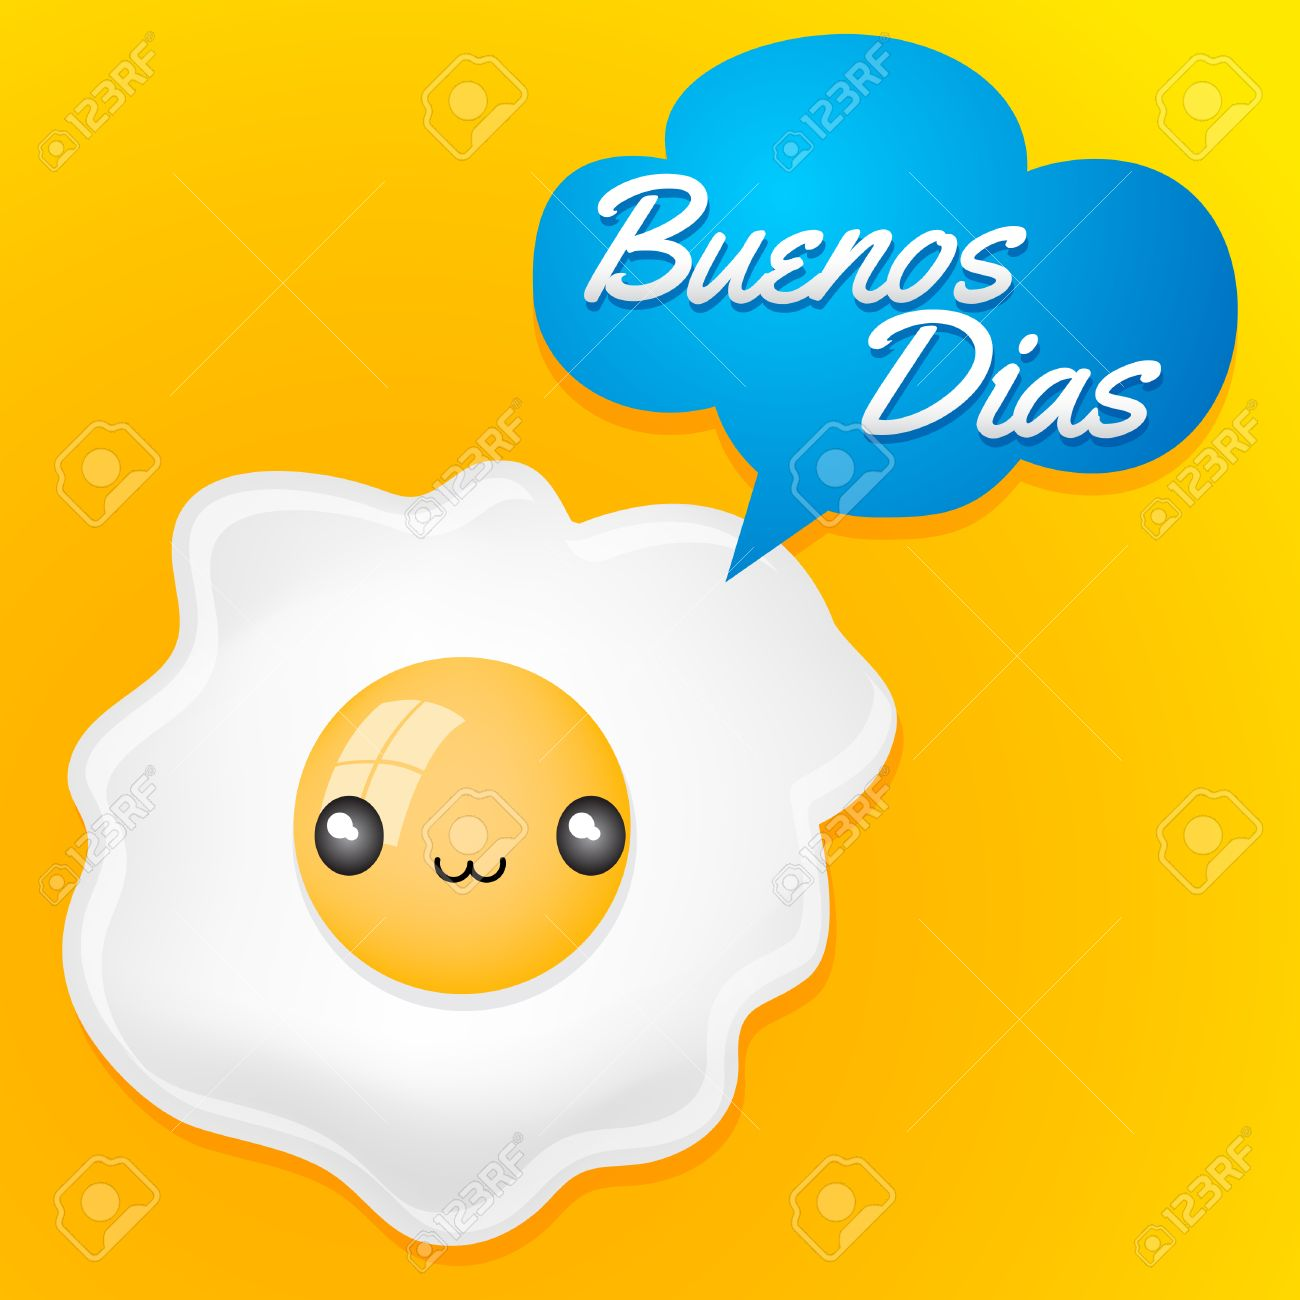 buenos dias good morning spanish text cute fried egg with